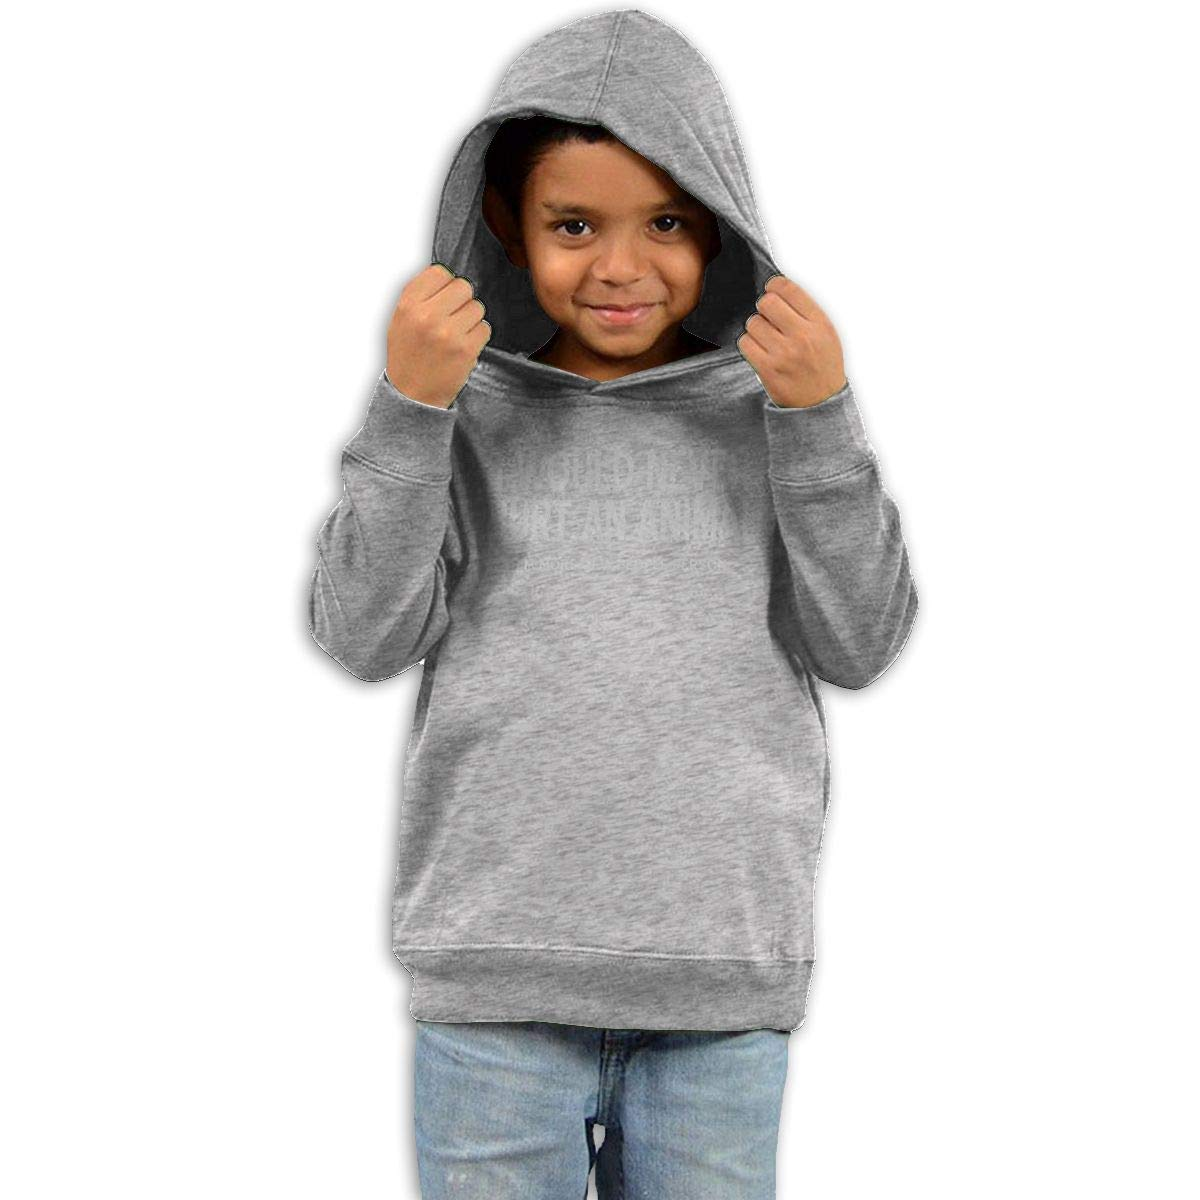 Childrens Hooded Sweater I Would Never Hurt an Animal Children Sweater Black